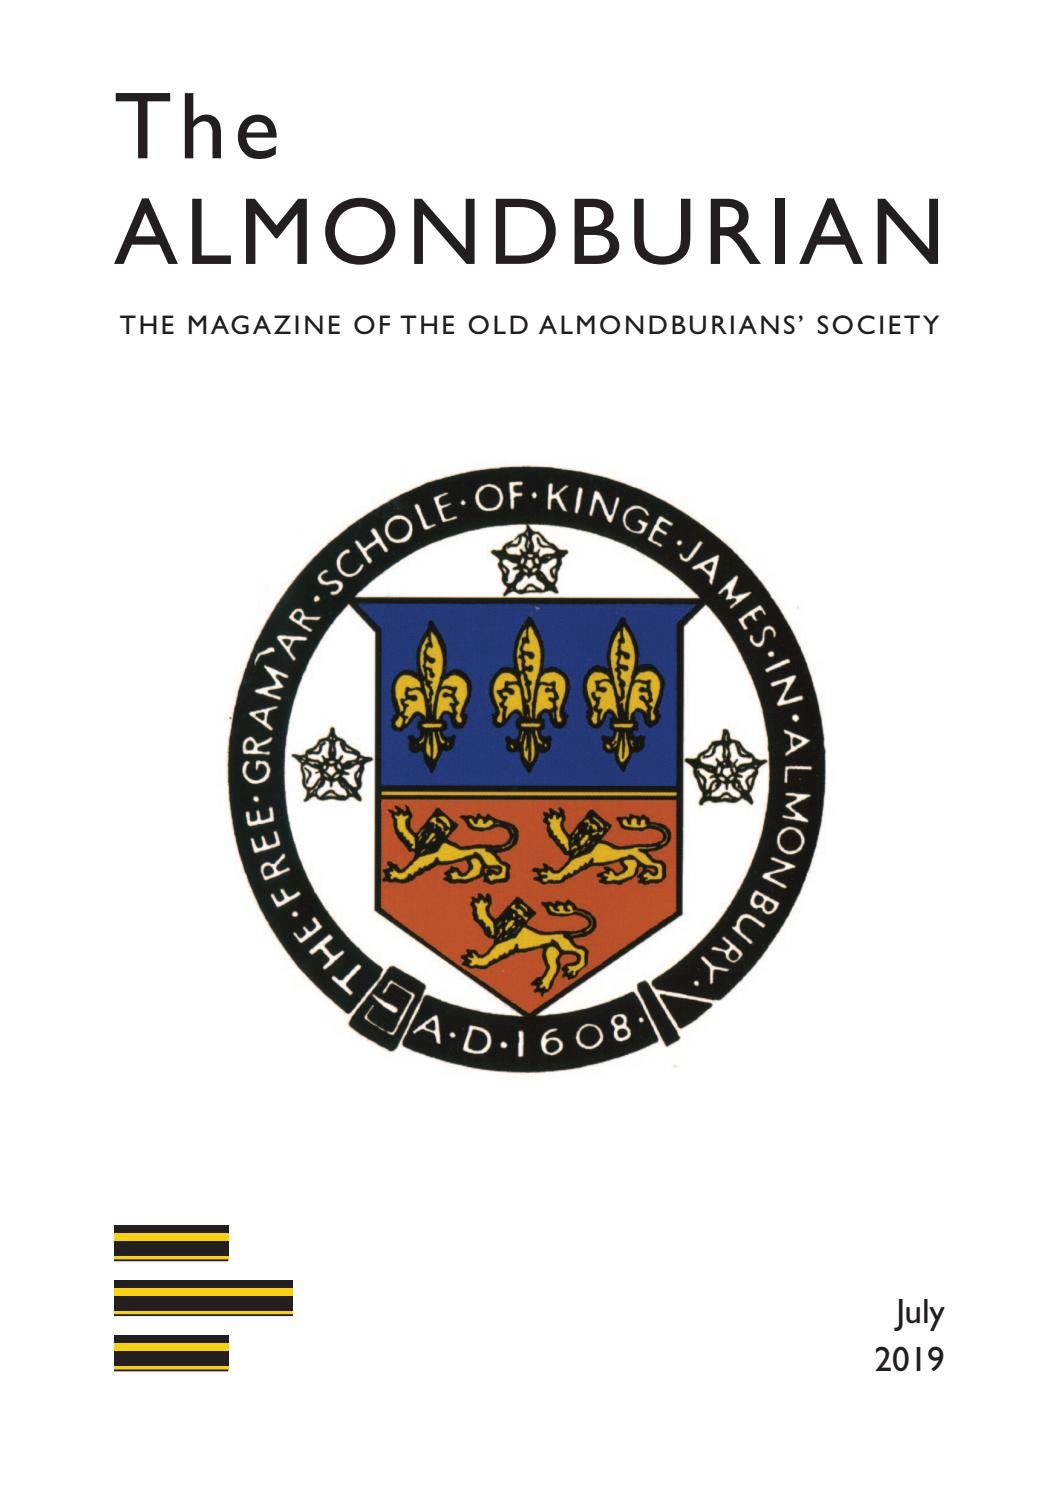 The Almondburian July 2019 by Roger Dowling - issuu on